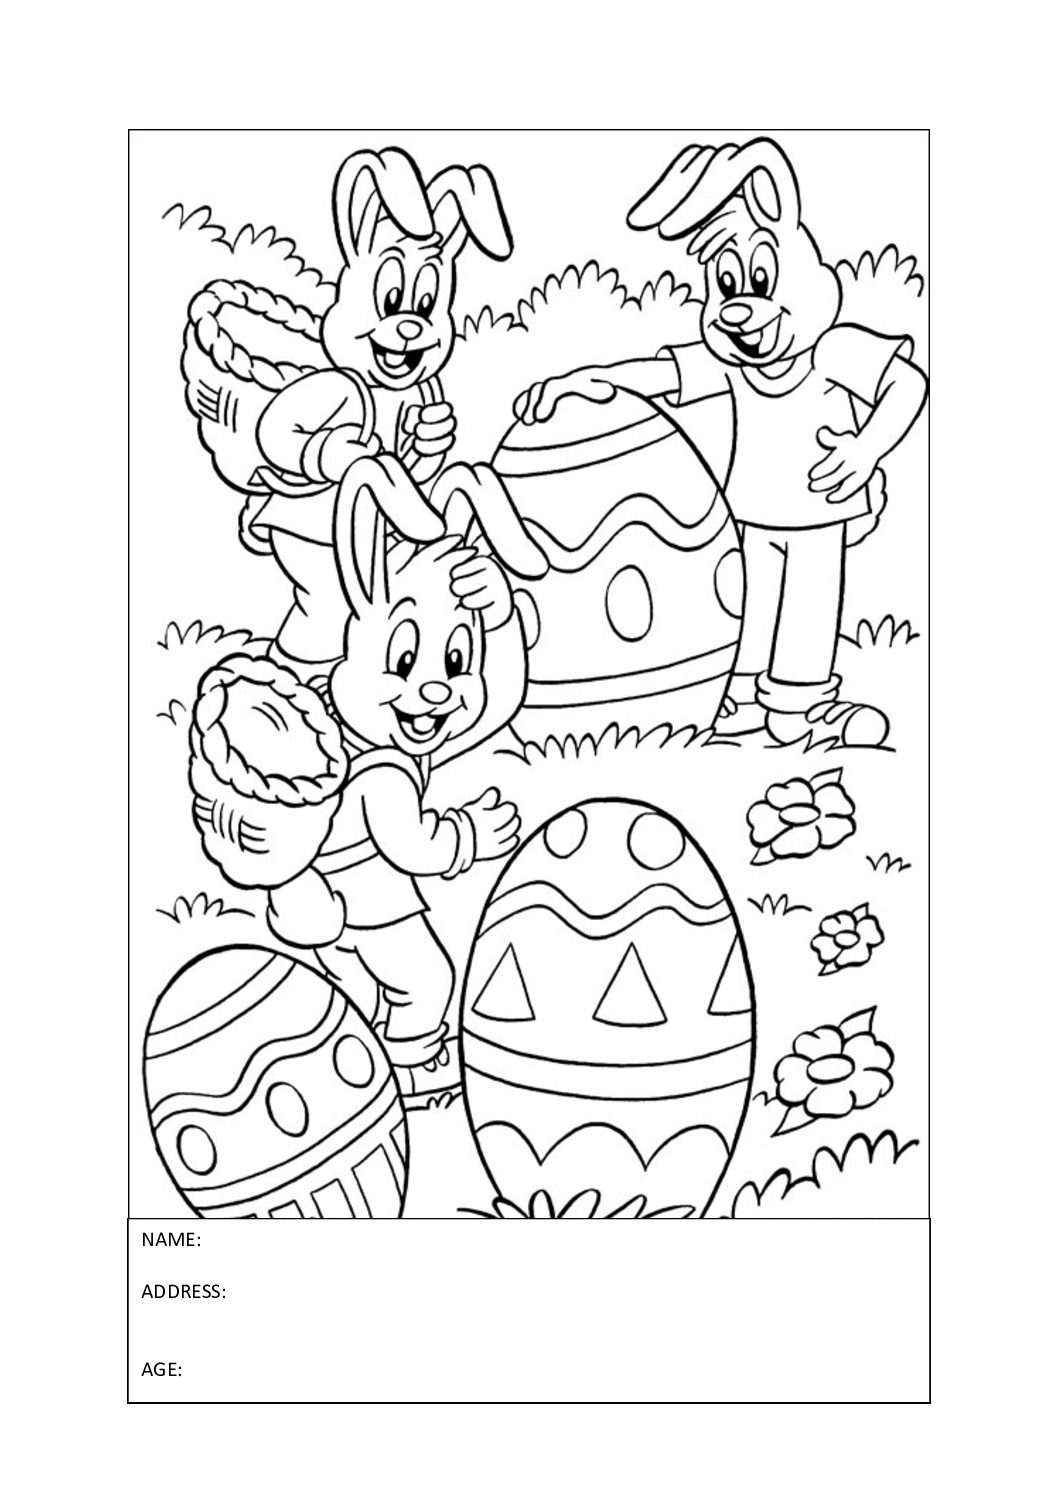 Colouring Competition for Easter